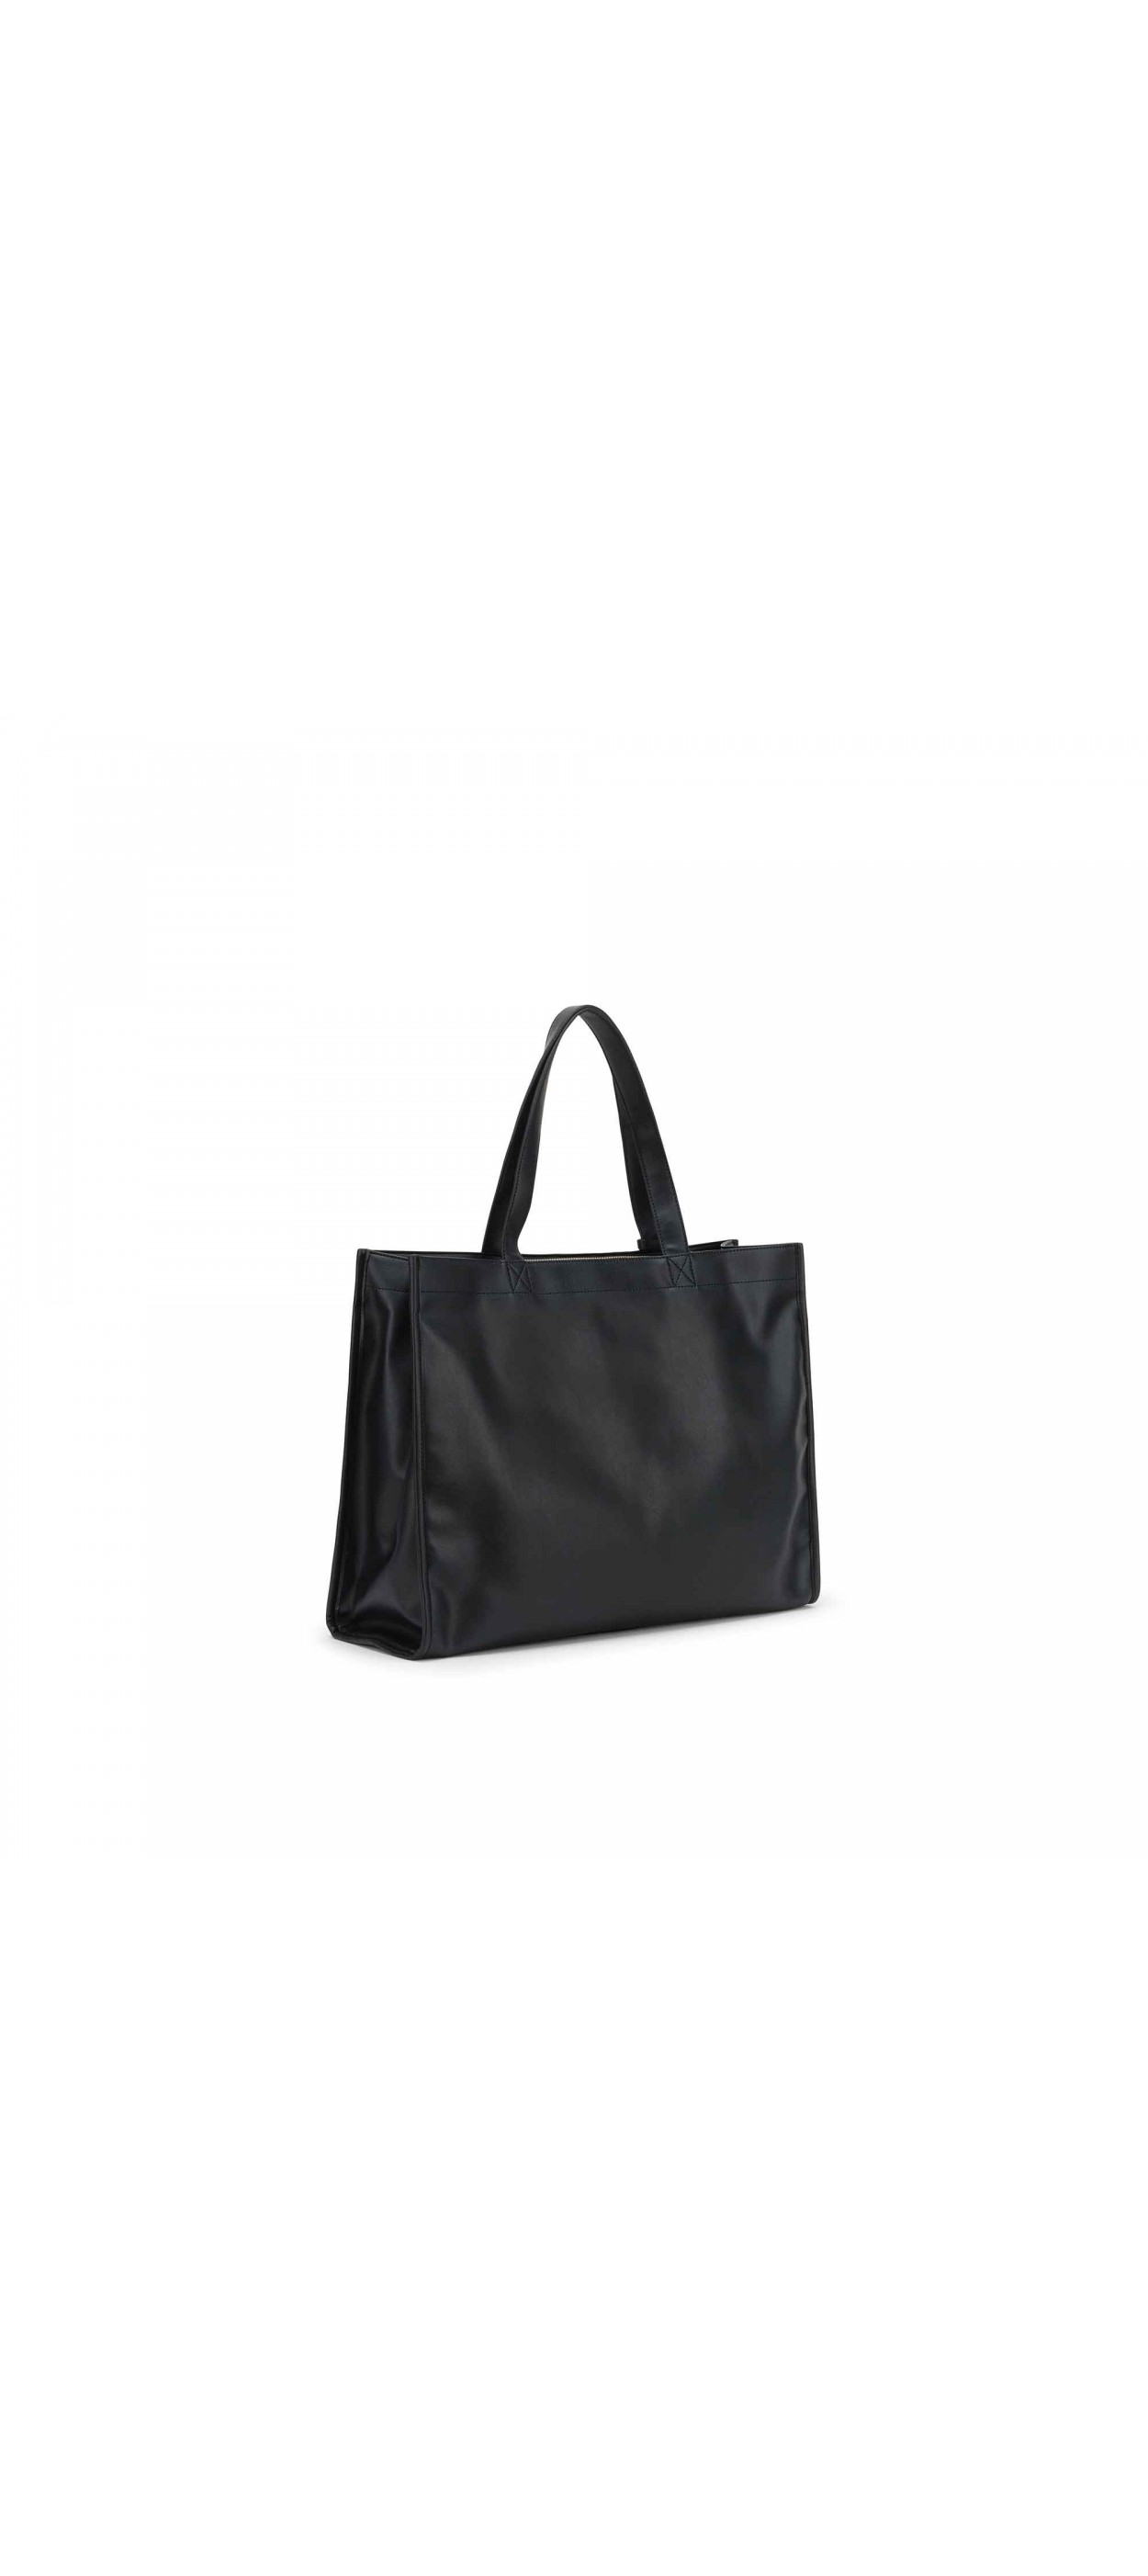 MAXI SHOPPER - GBDA1854 - GAELLE PARIS